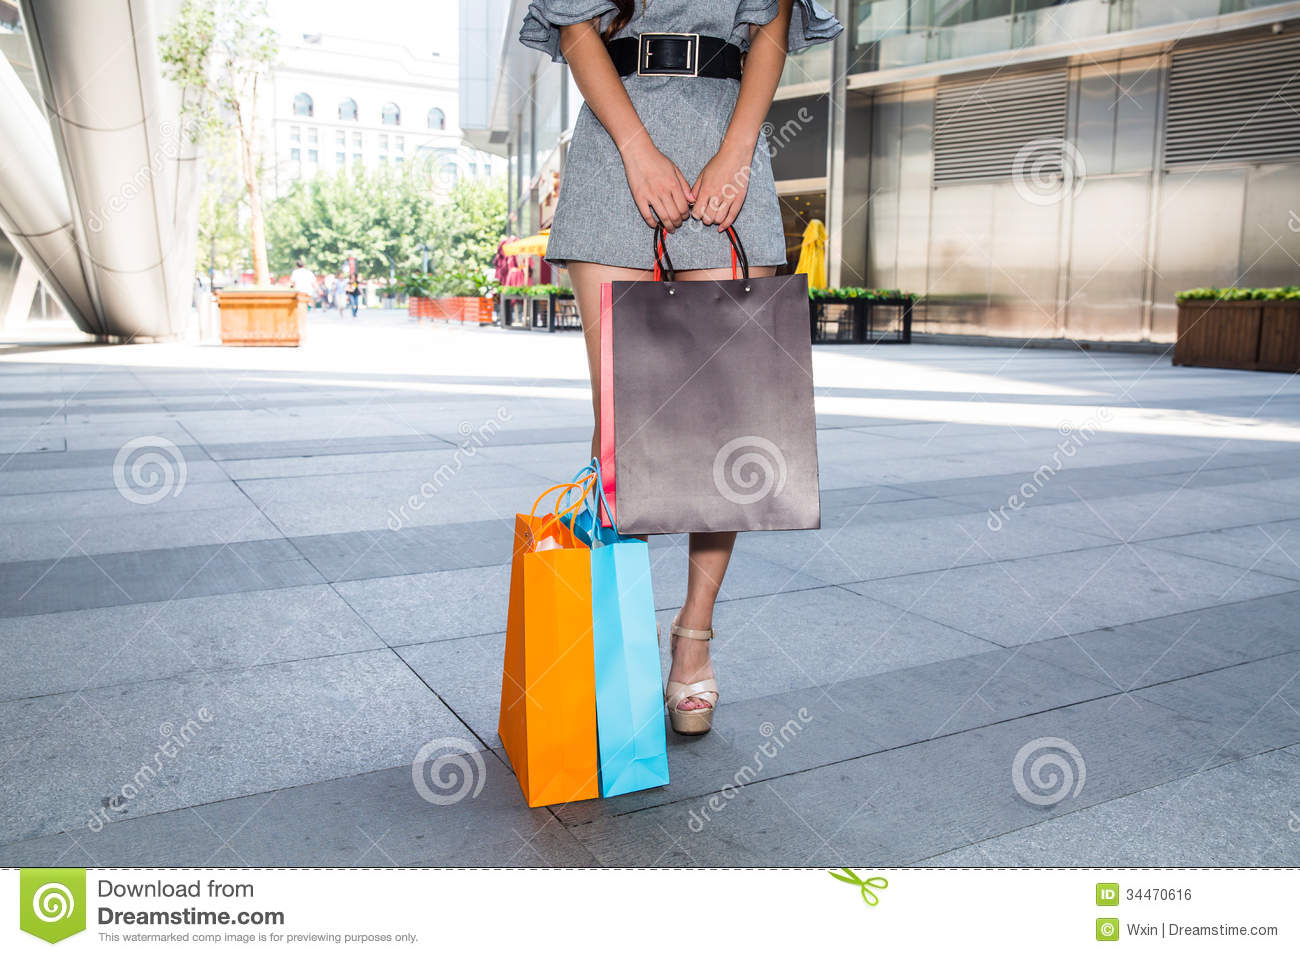 Elegant  Wearing Warm Clothes While Carrying Shopping Bags In The Shopping